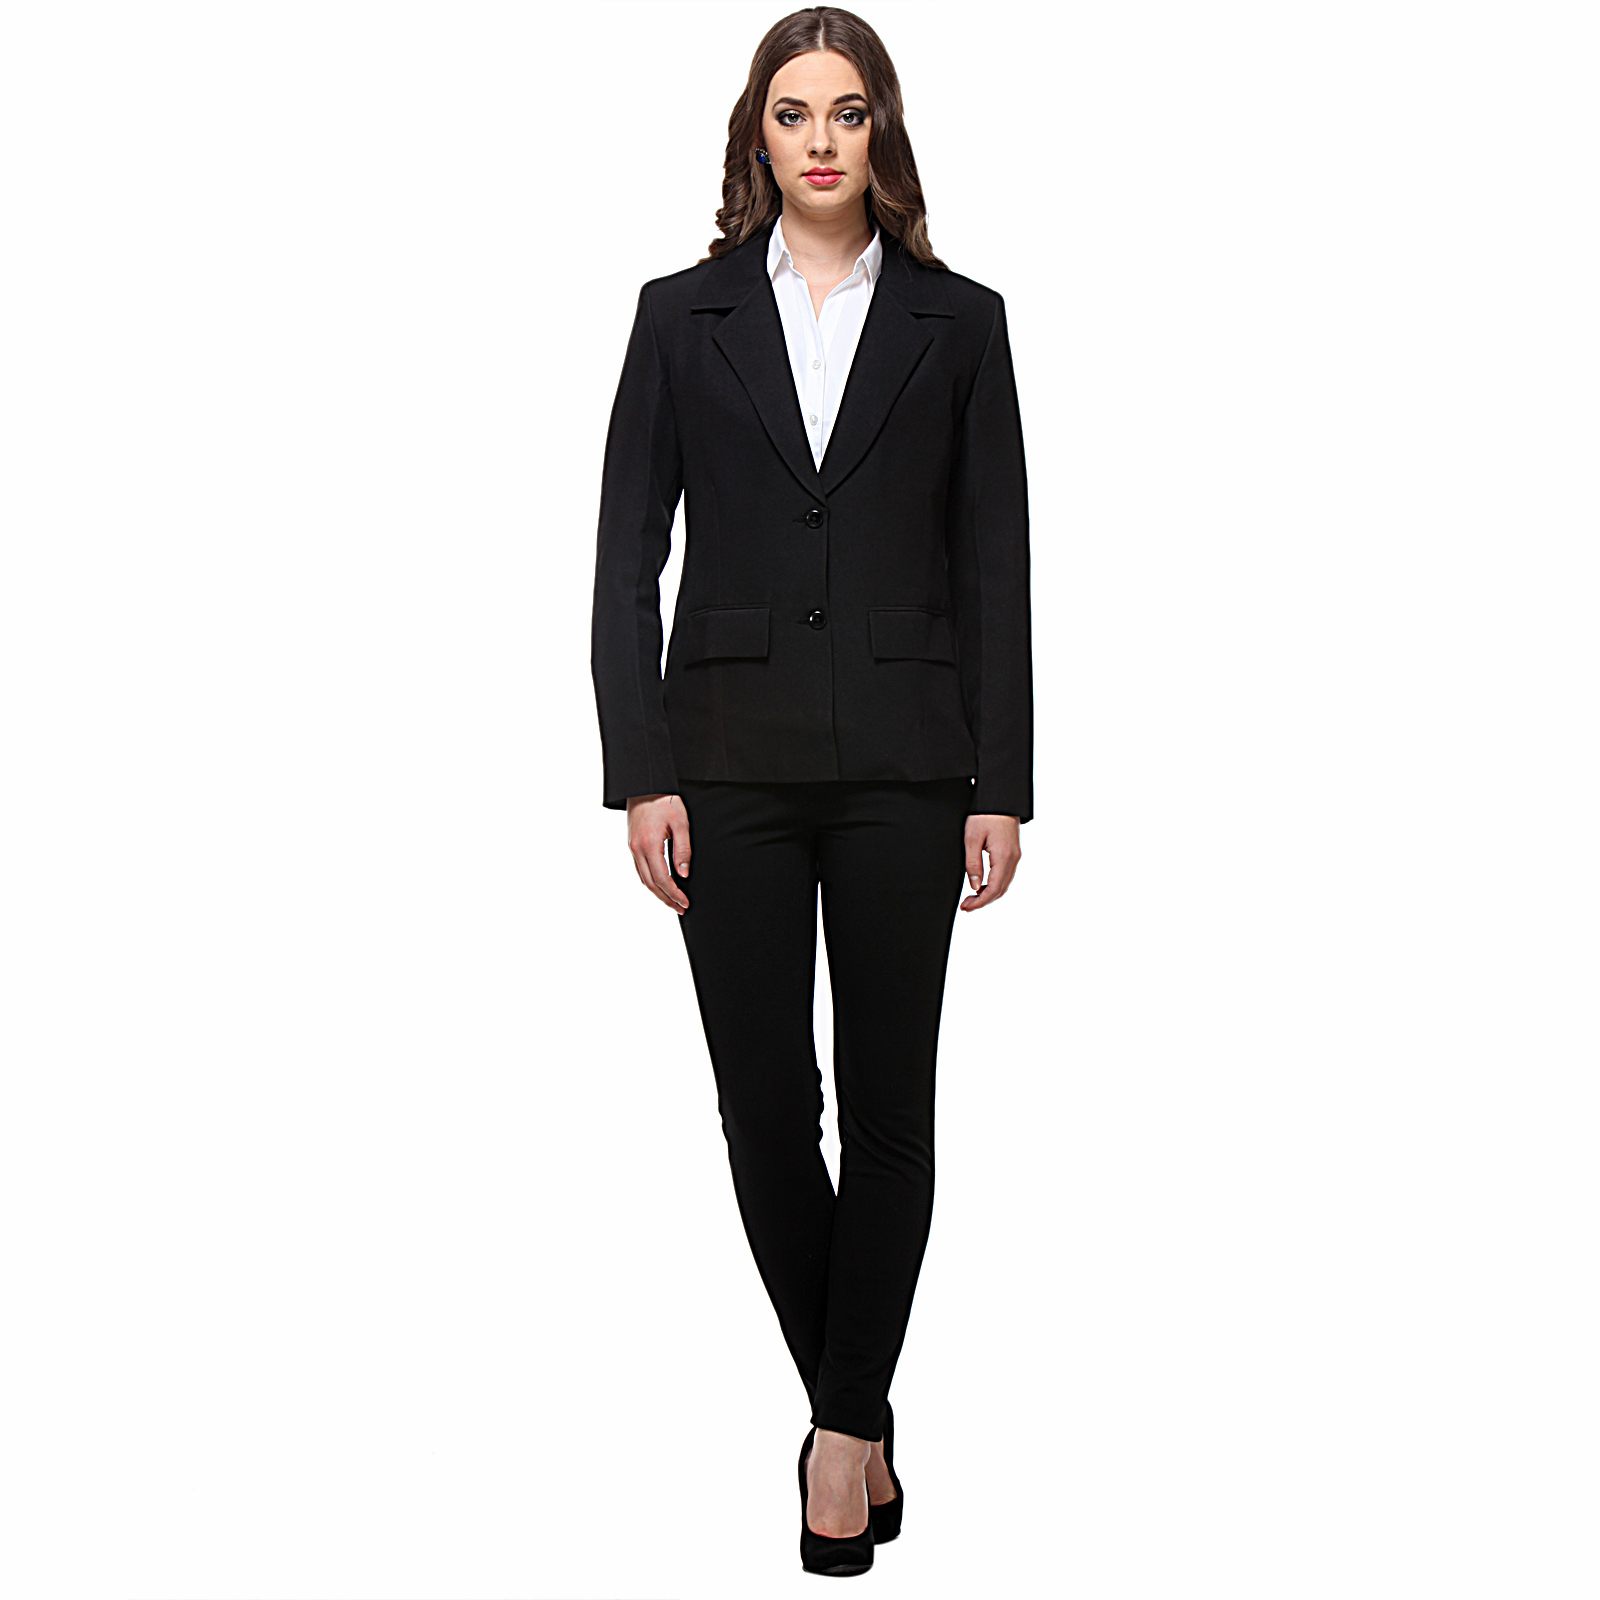 official blazers for ladies